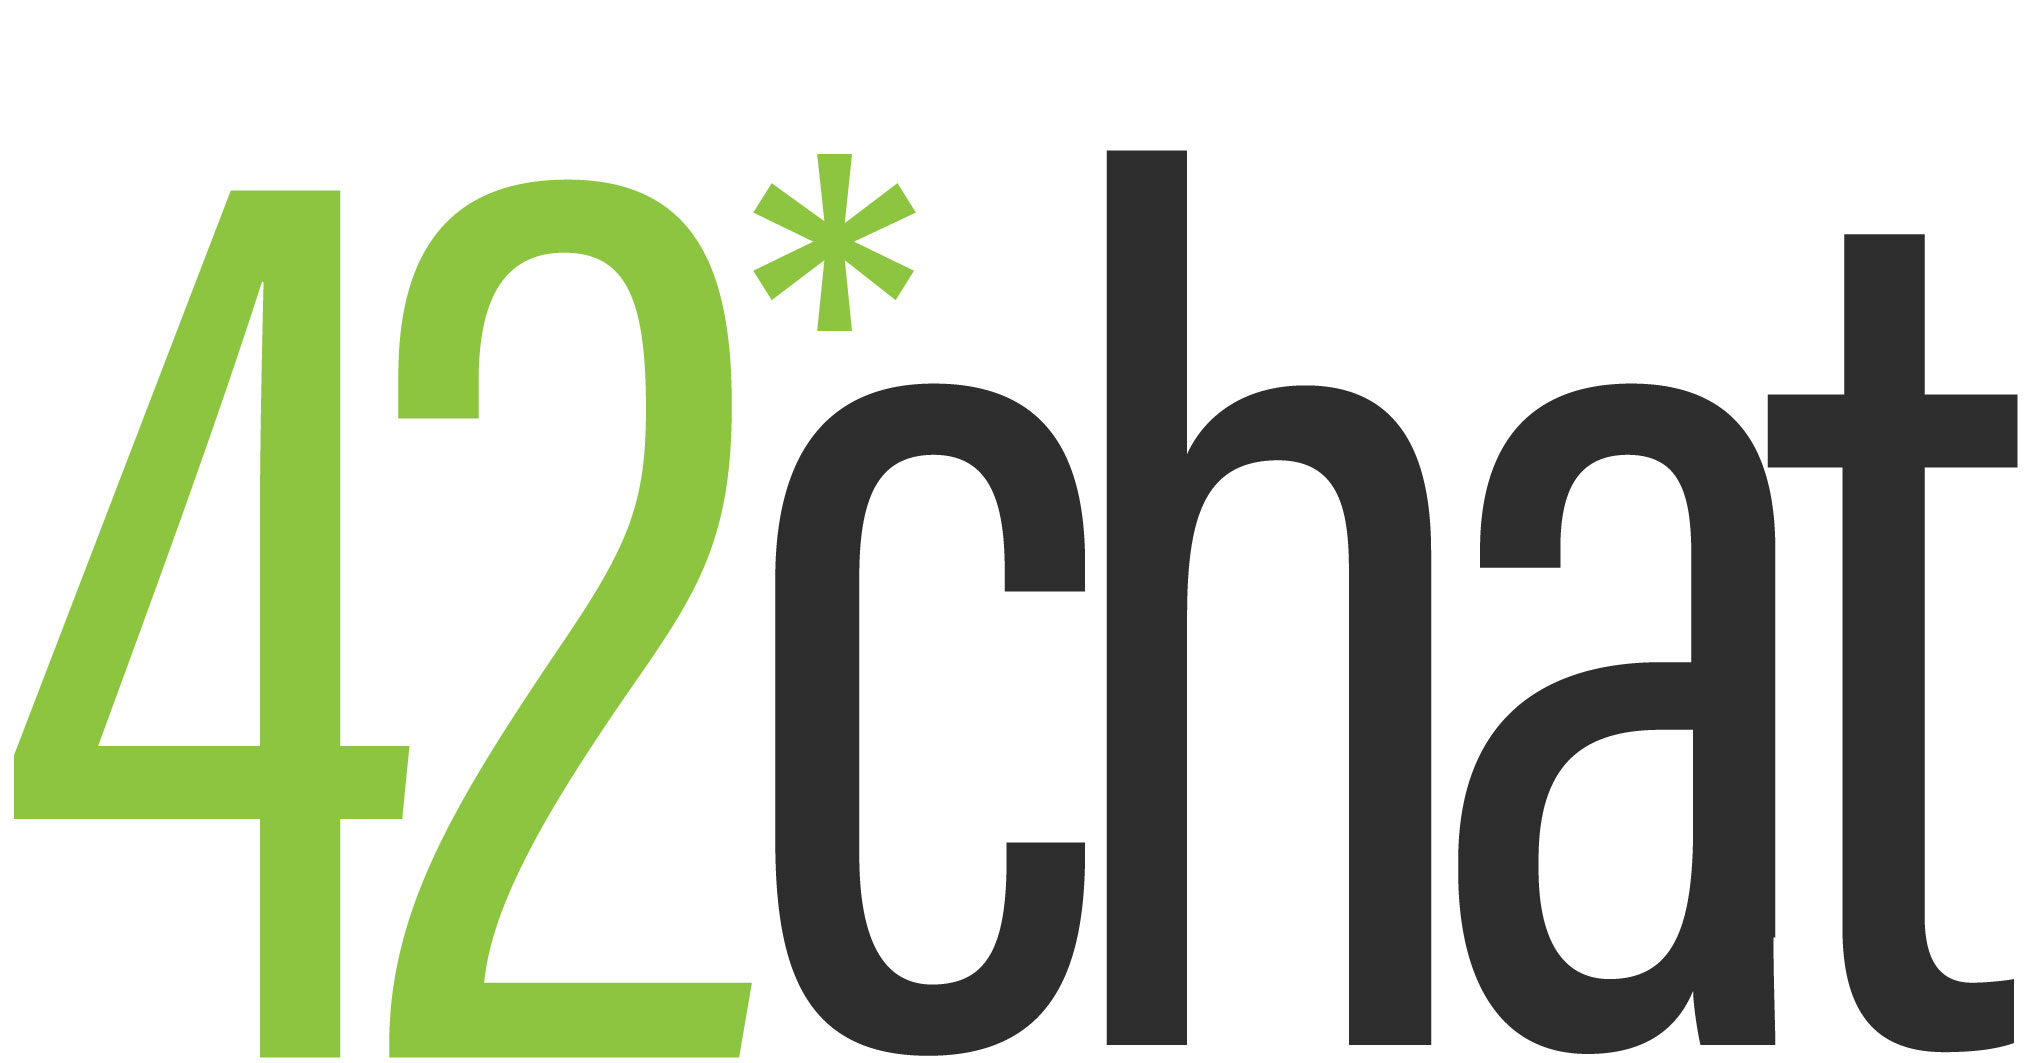 Text AI Event Leader 42Chat Adds 3 to Its Sales Team